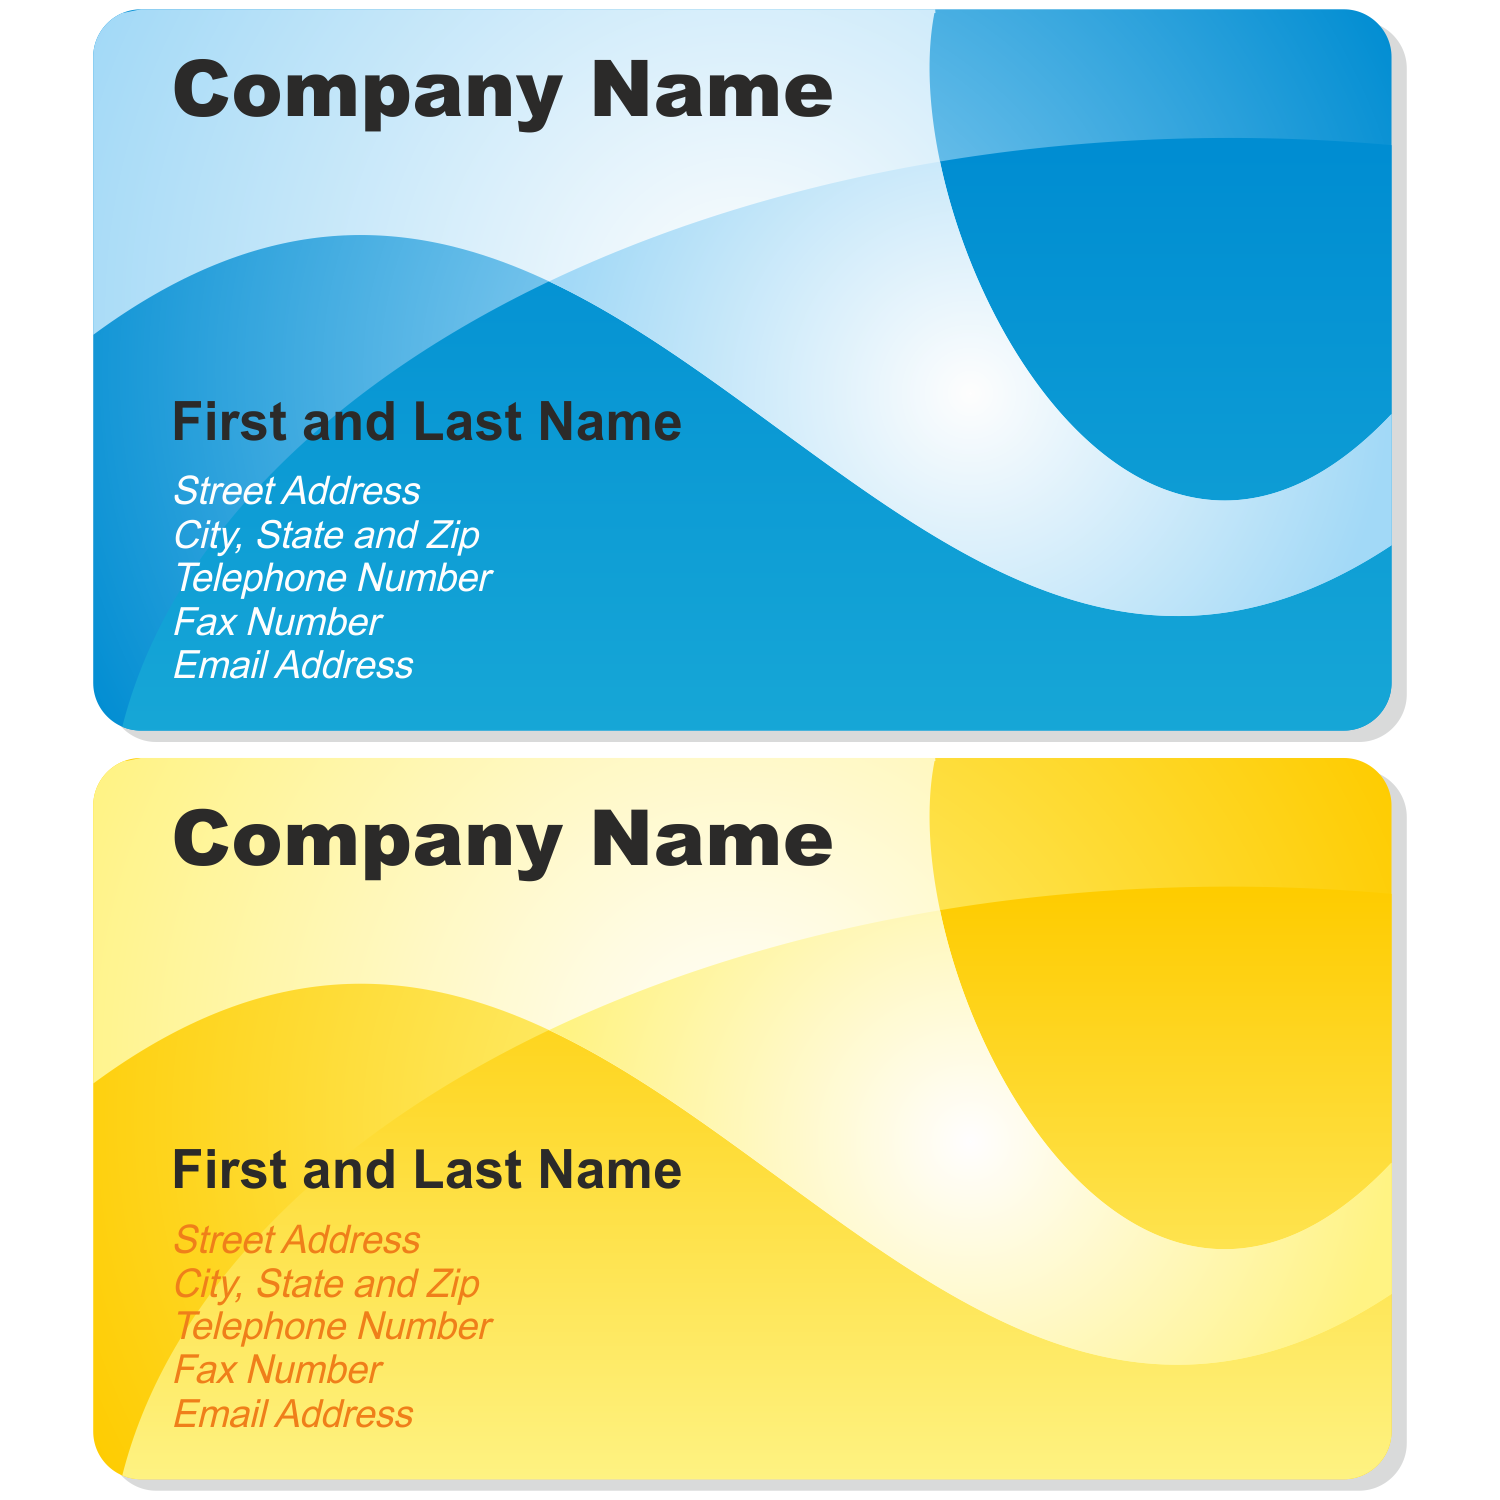 Calling Card Template Png 9 Png Image